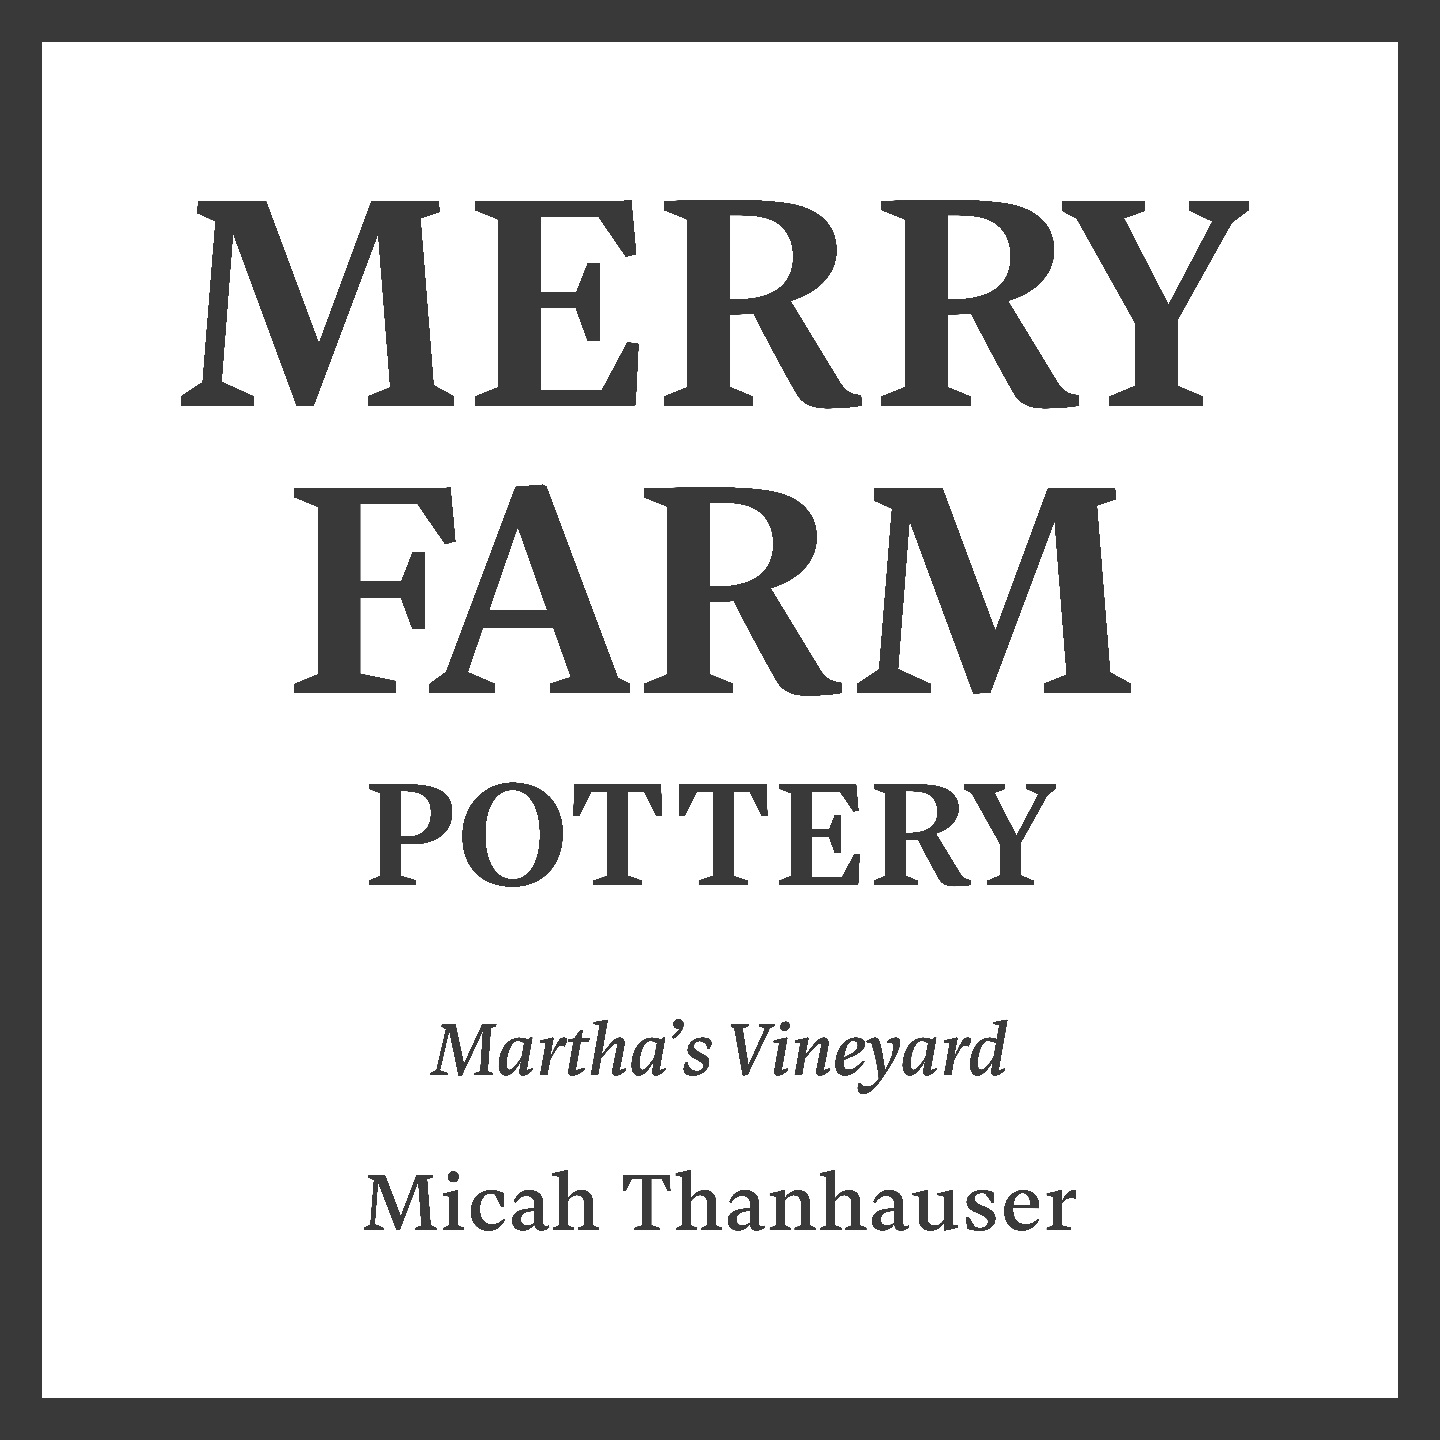 Merry Farm Pottery